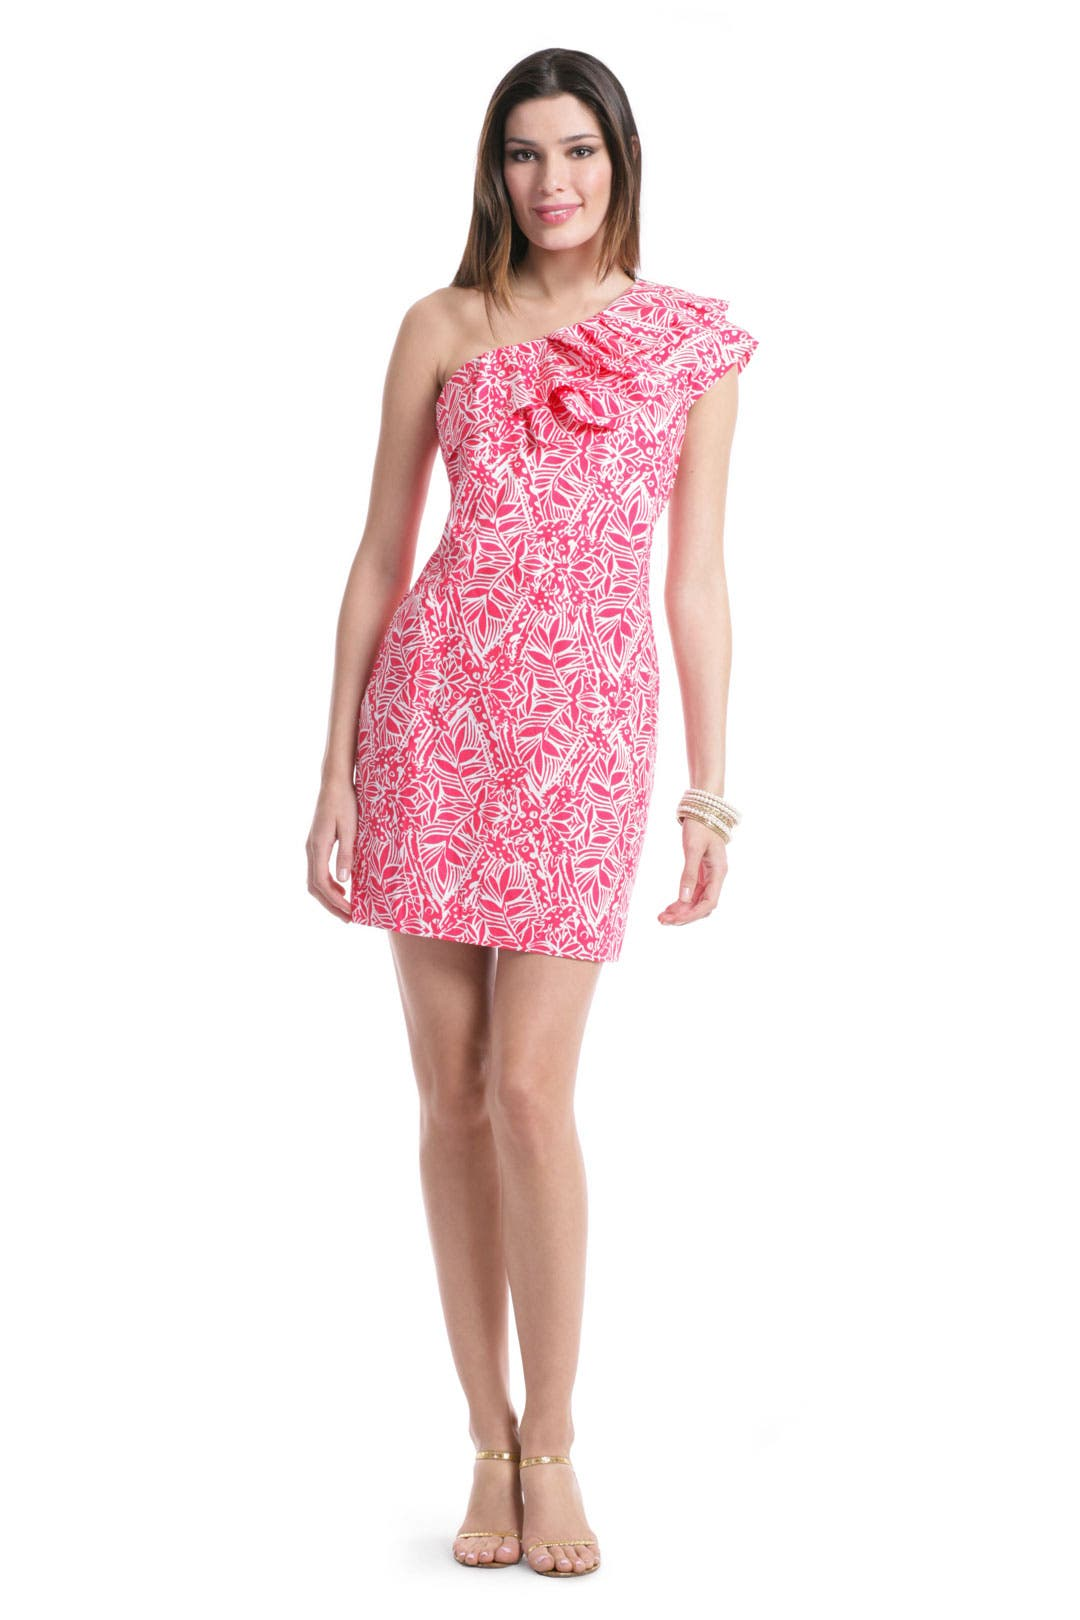 Punchy Pink Dress by Lilly Pulitzer